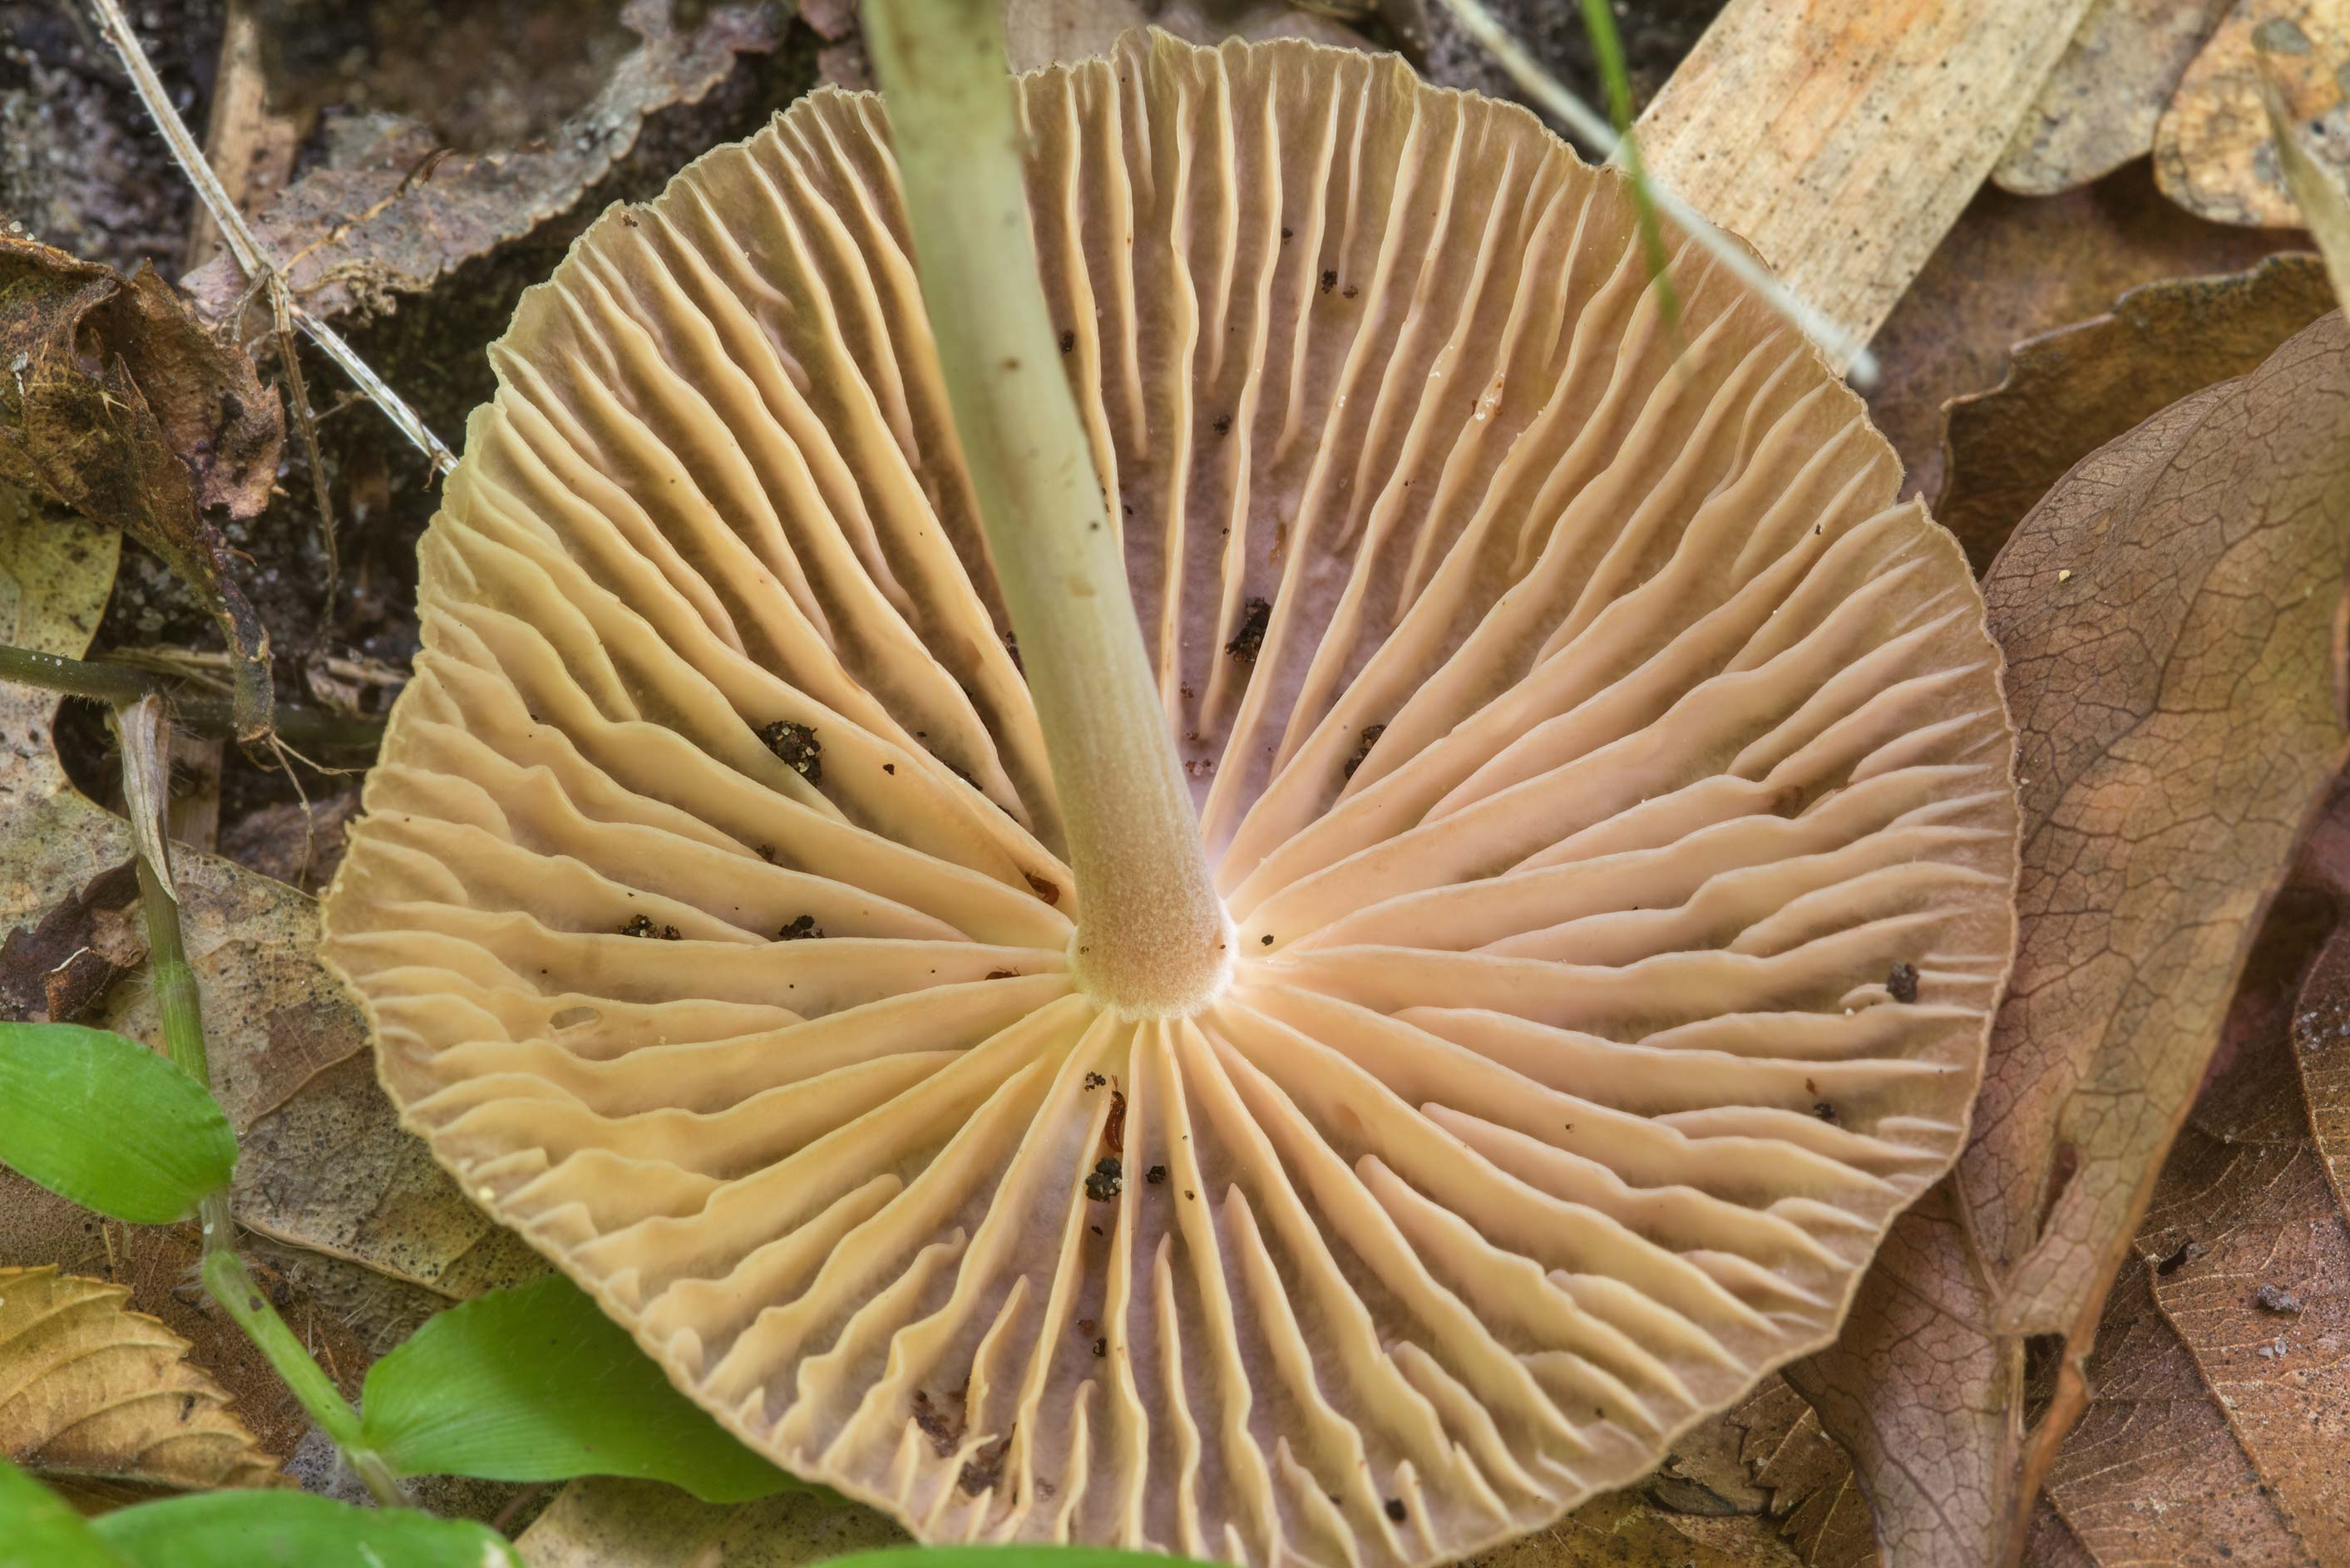 Gills of Gymnopus foetidus mushroom on Caney...Forest, near Huntsville. Texas